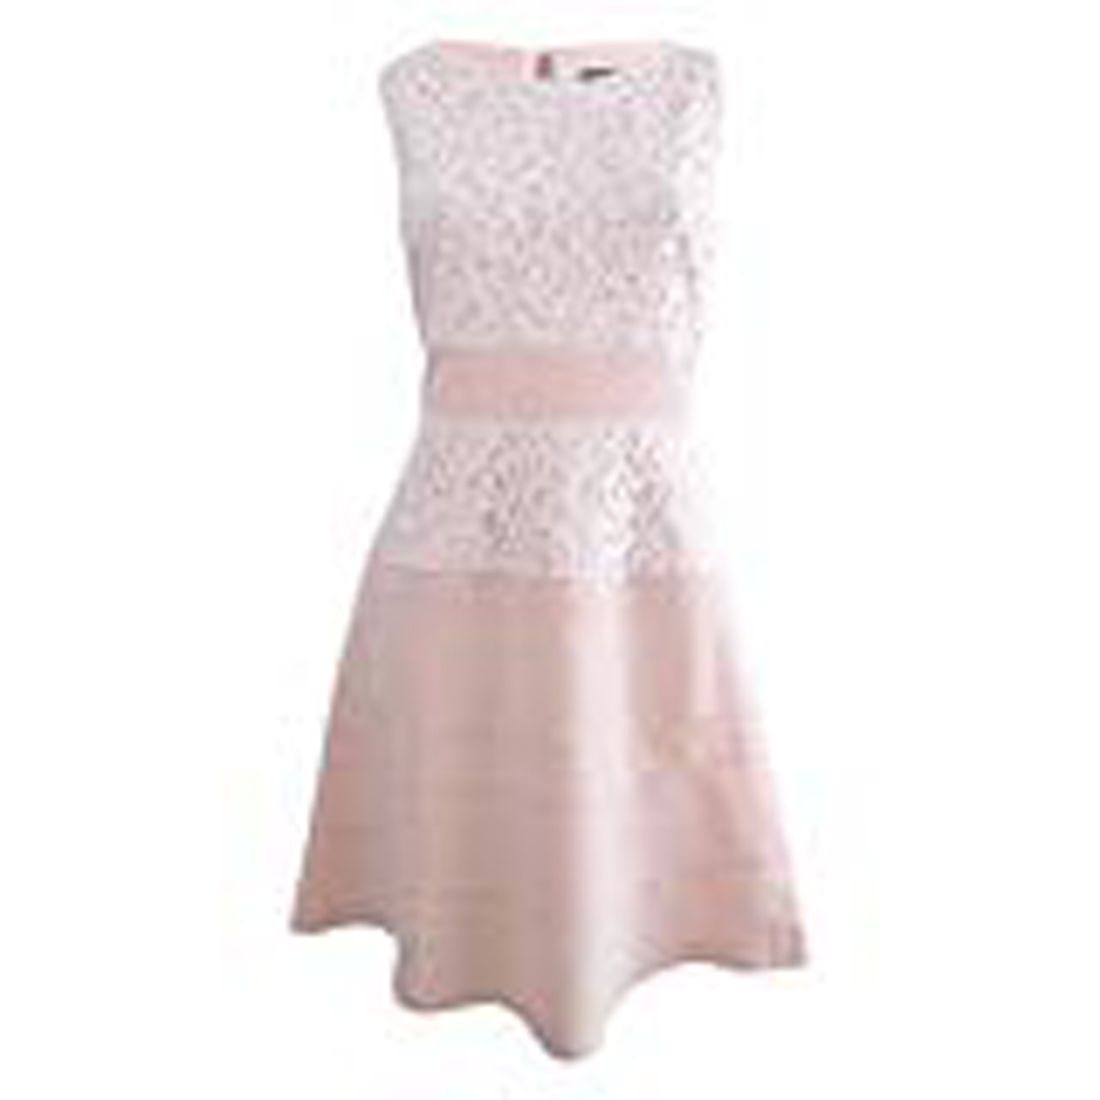 Calvin Klein Tommy Hilfiger Womens Lace Overlay A Line Party Dress Pink 2 Walmart Com Party Dress Dresses Lace Overlay [ 1100 x 1100 Pixel ]